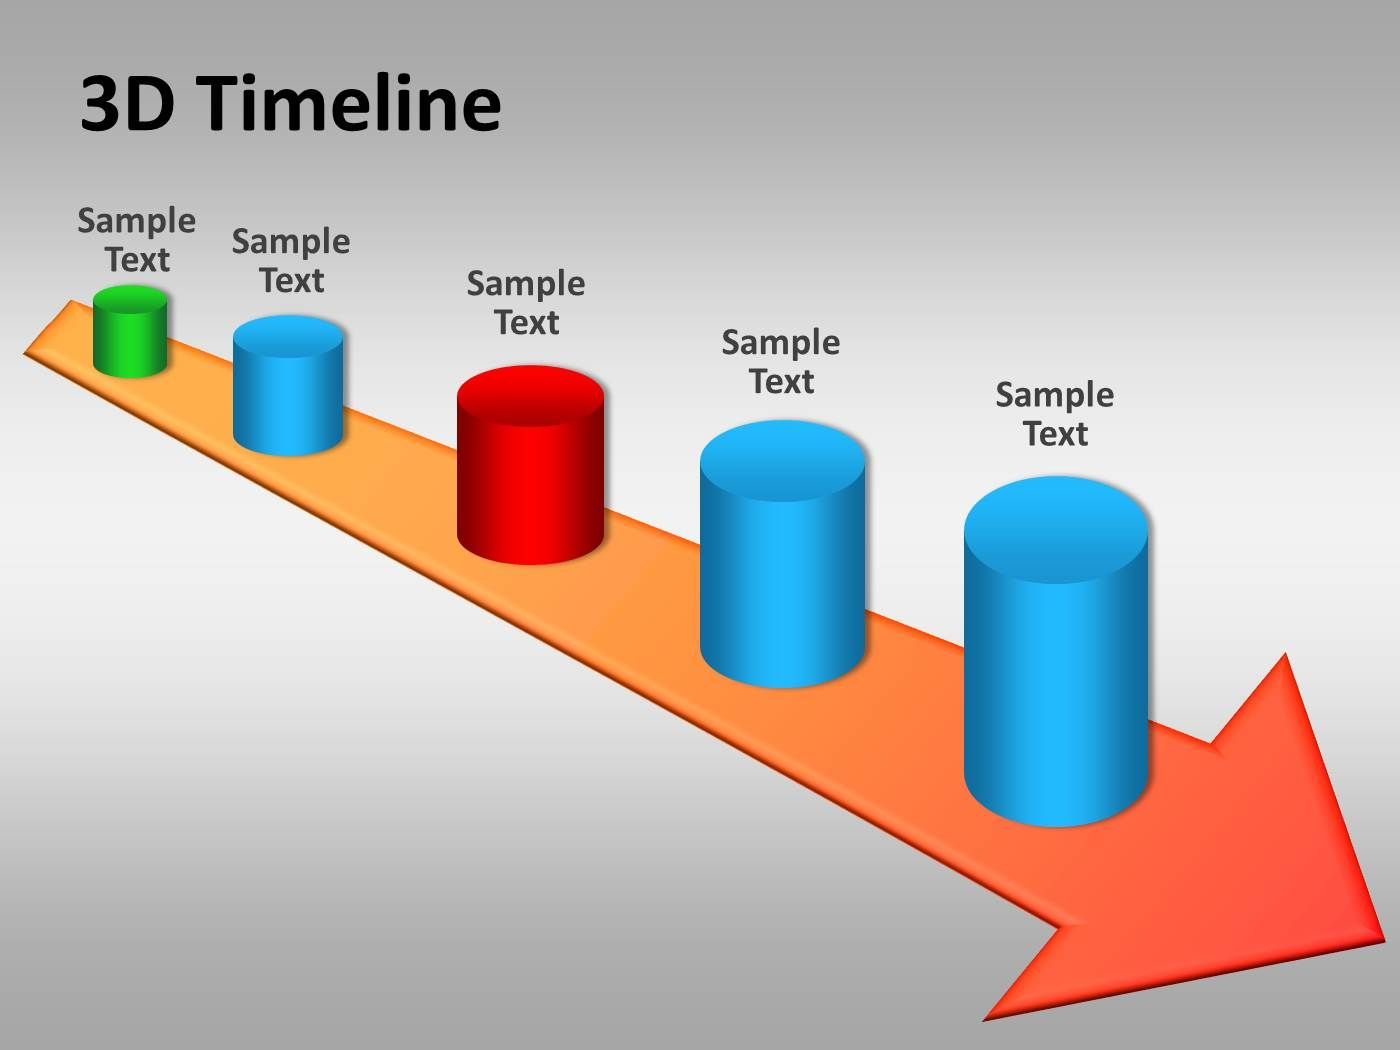 3d timeline powerpoint template is a free timeline template design, Modern powerpoint